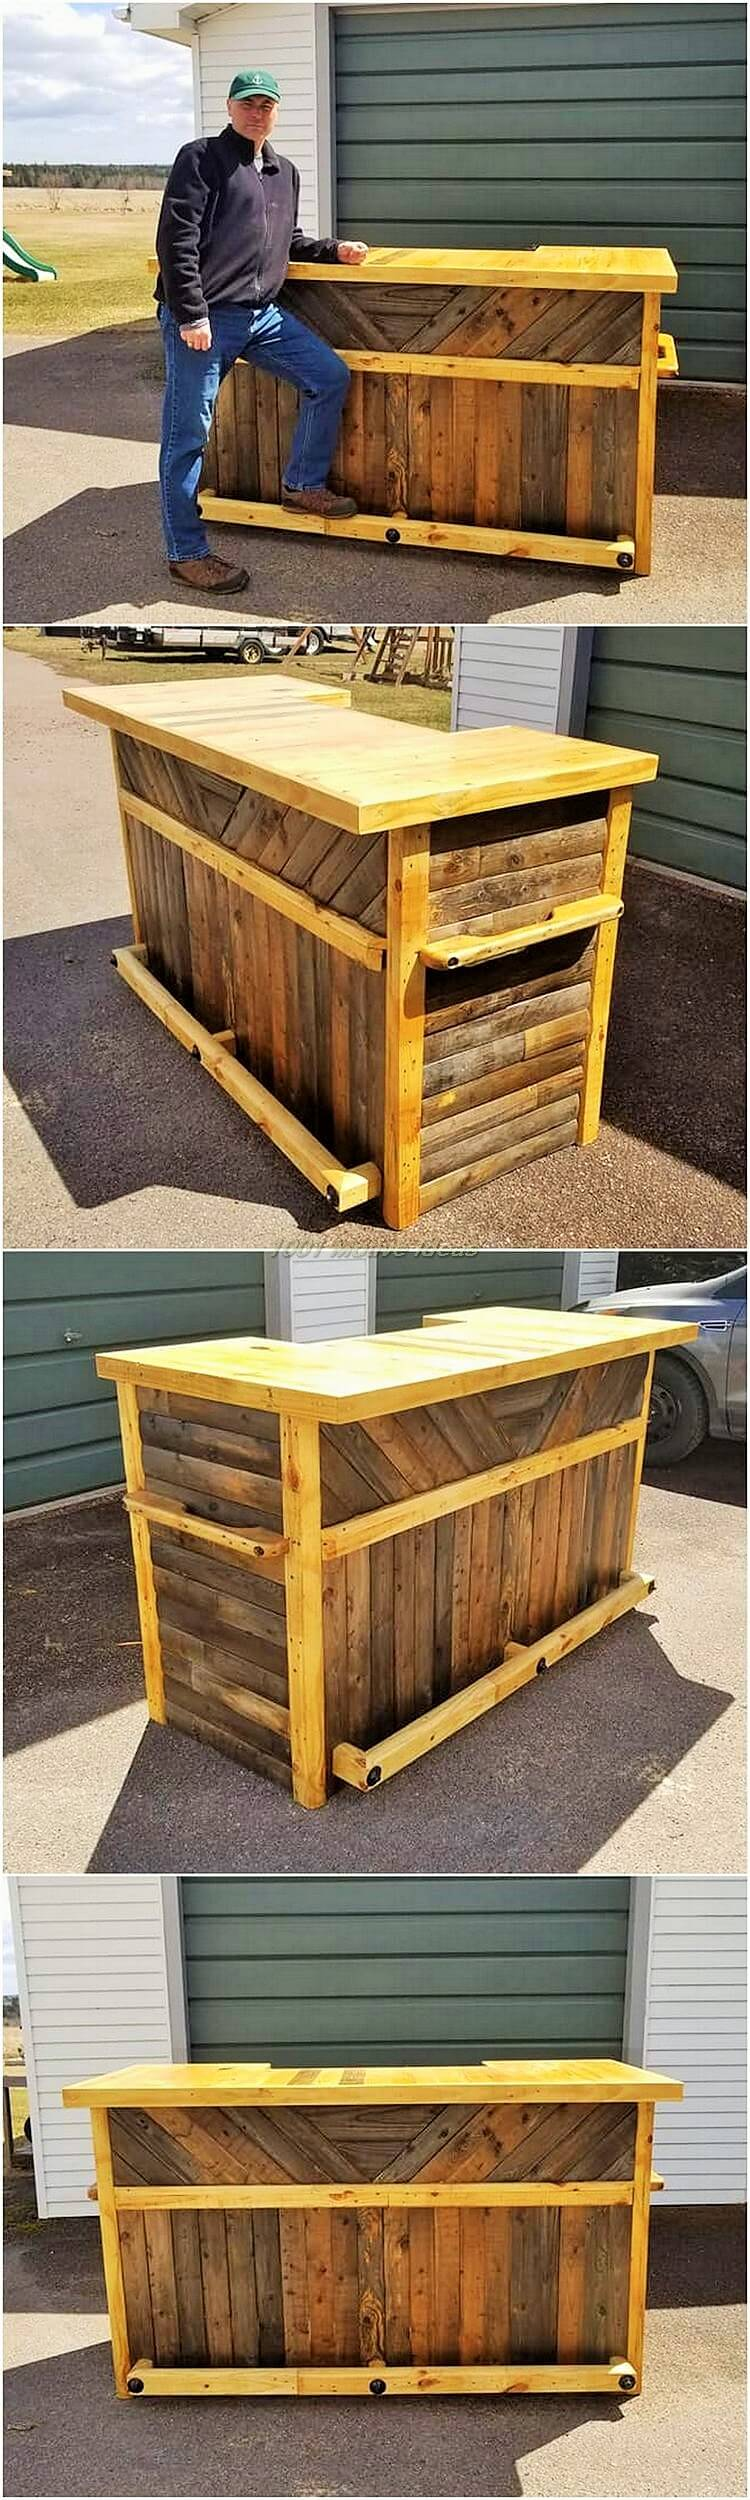 wooden-Pallet-furniture-Project-Ideas-003